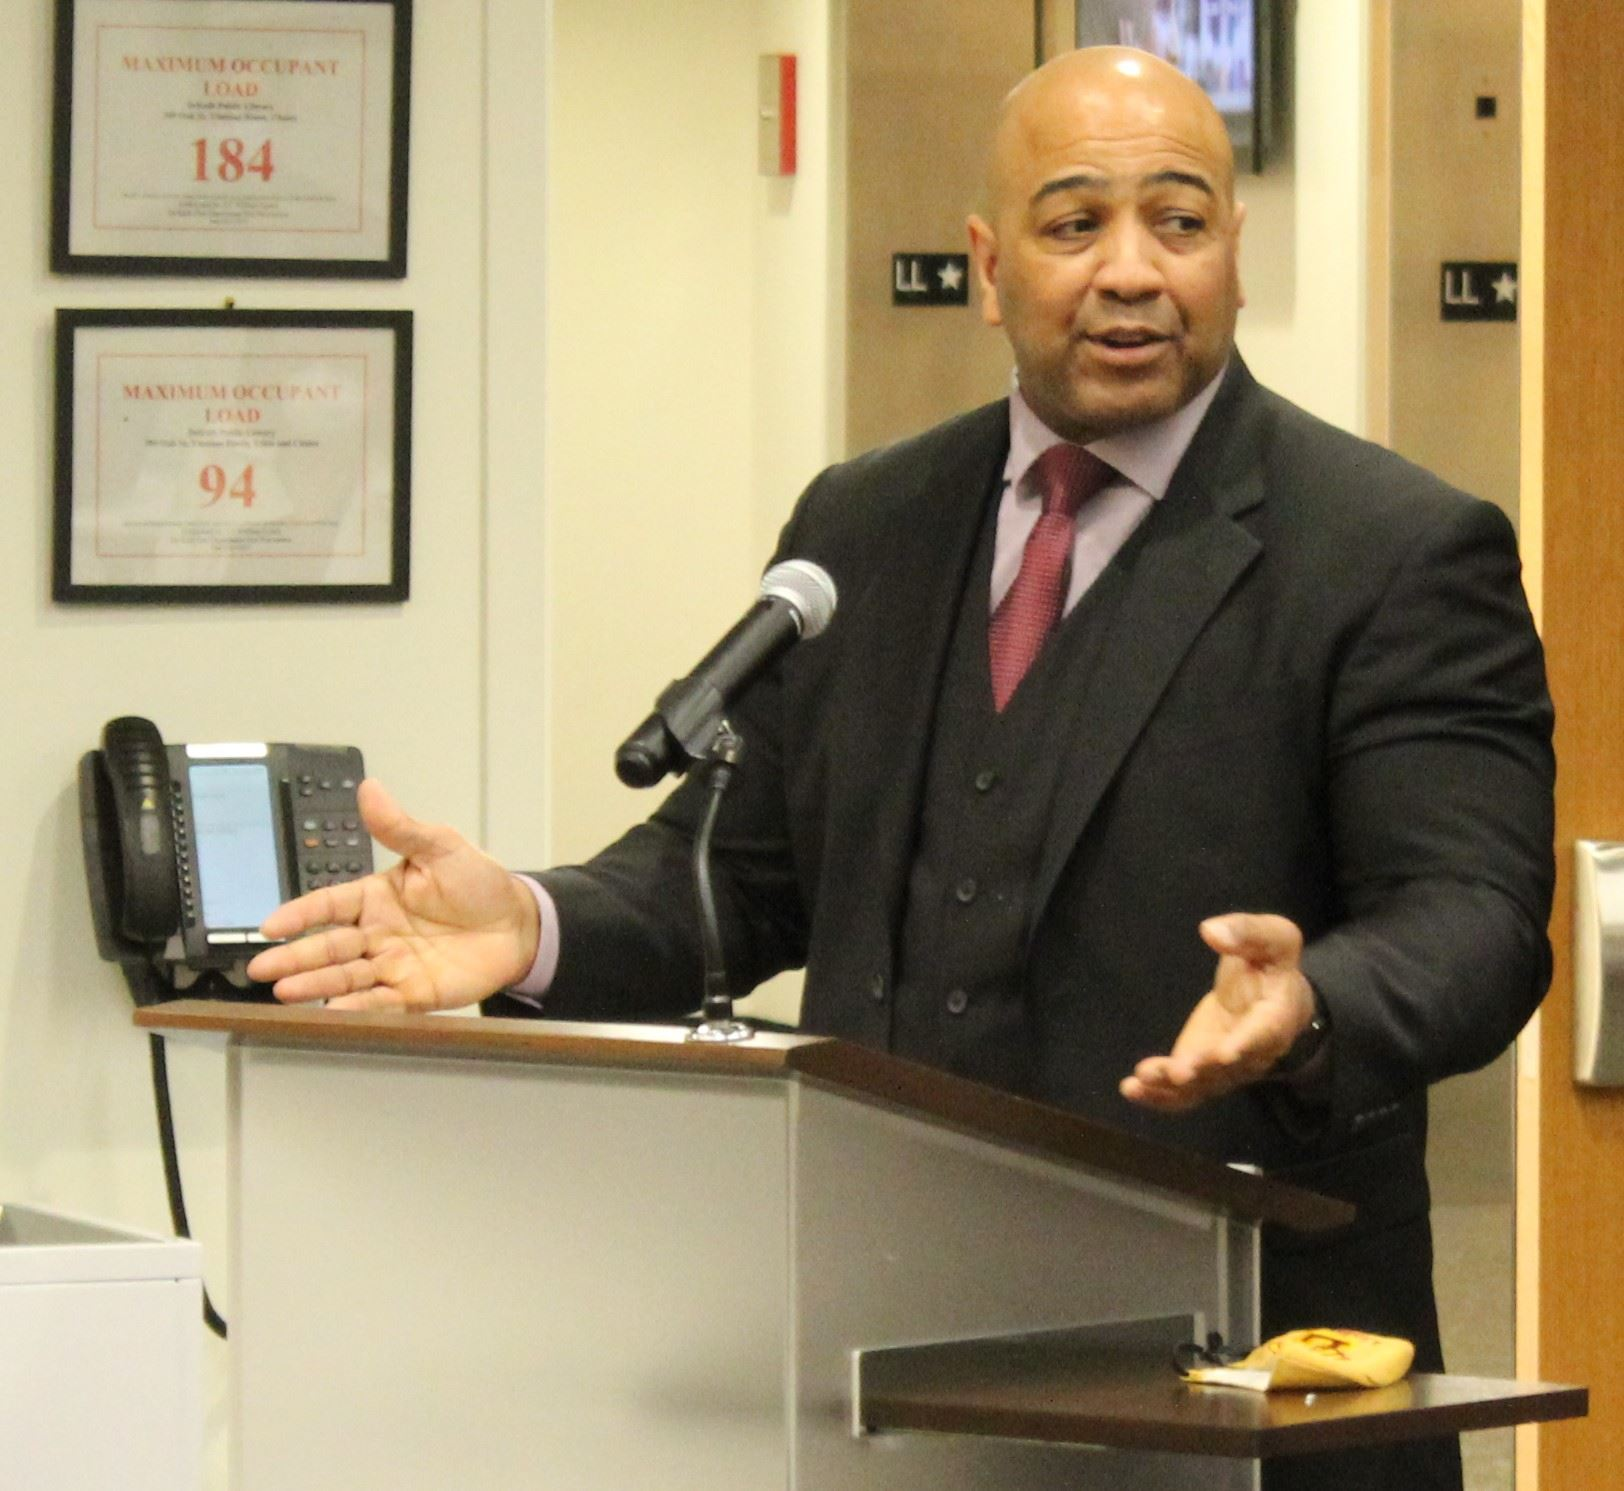 David Byrd speaks after being announced as DeKalb's next Chief of Police